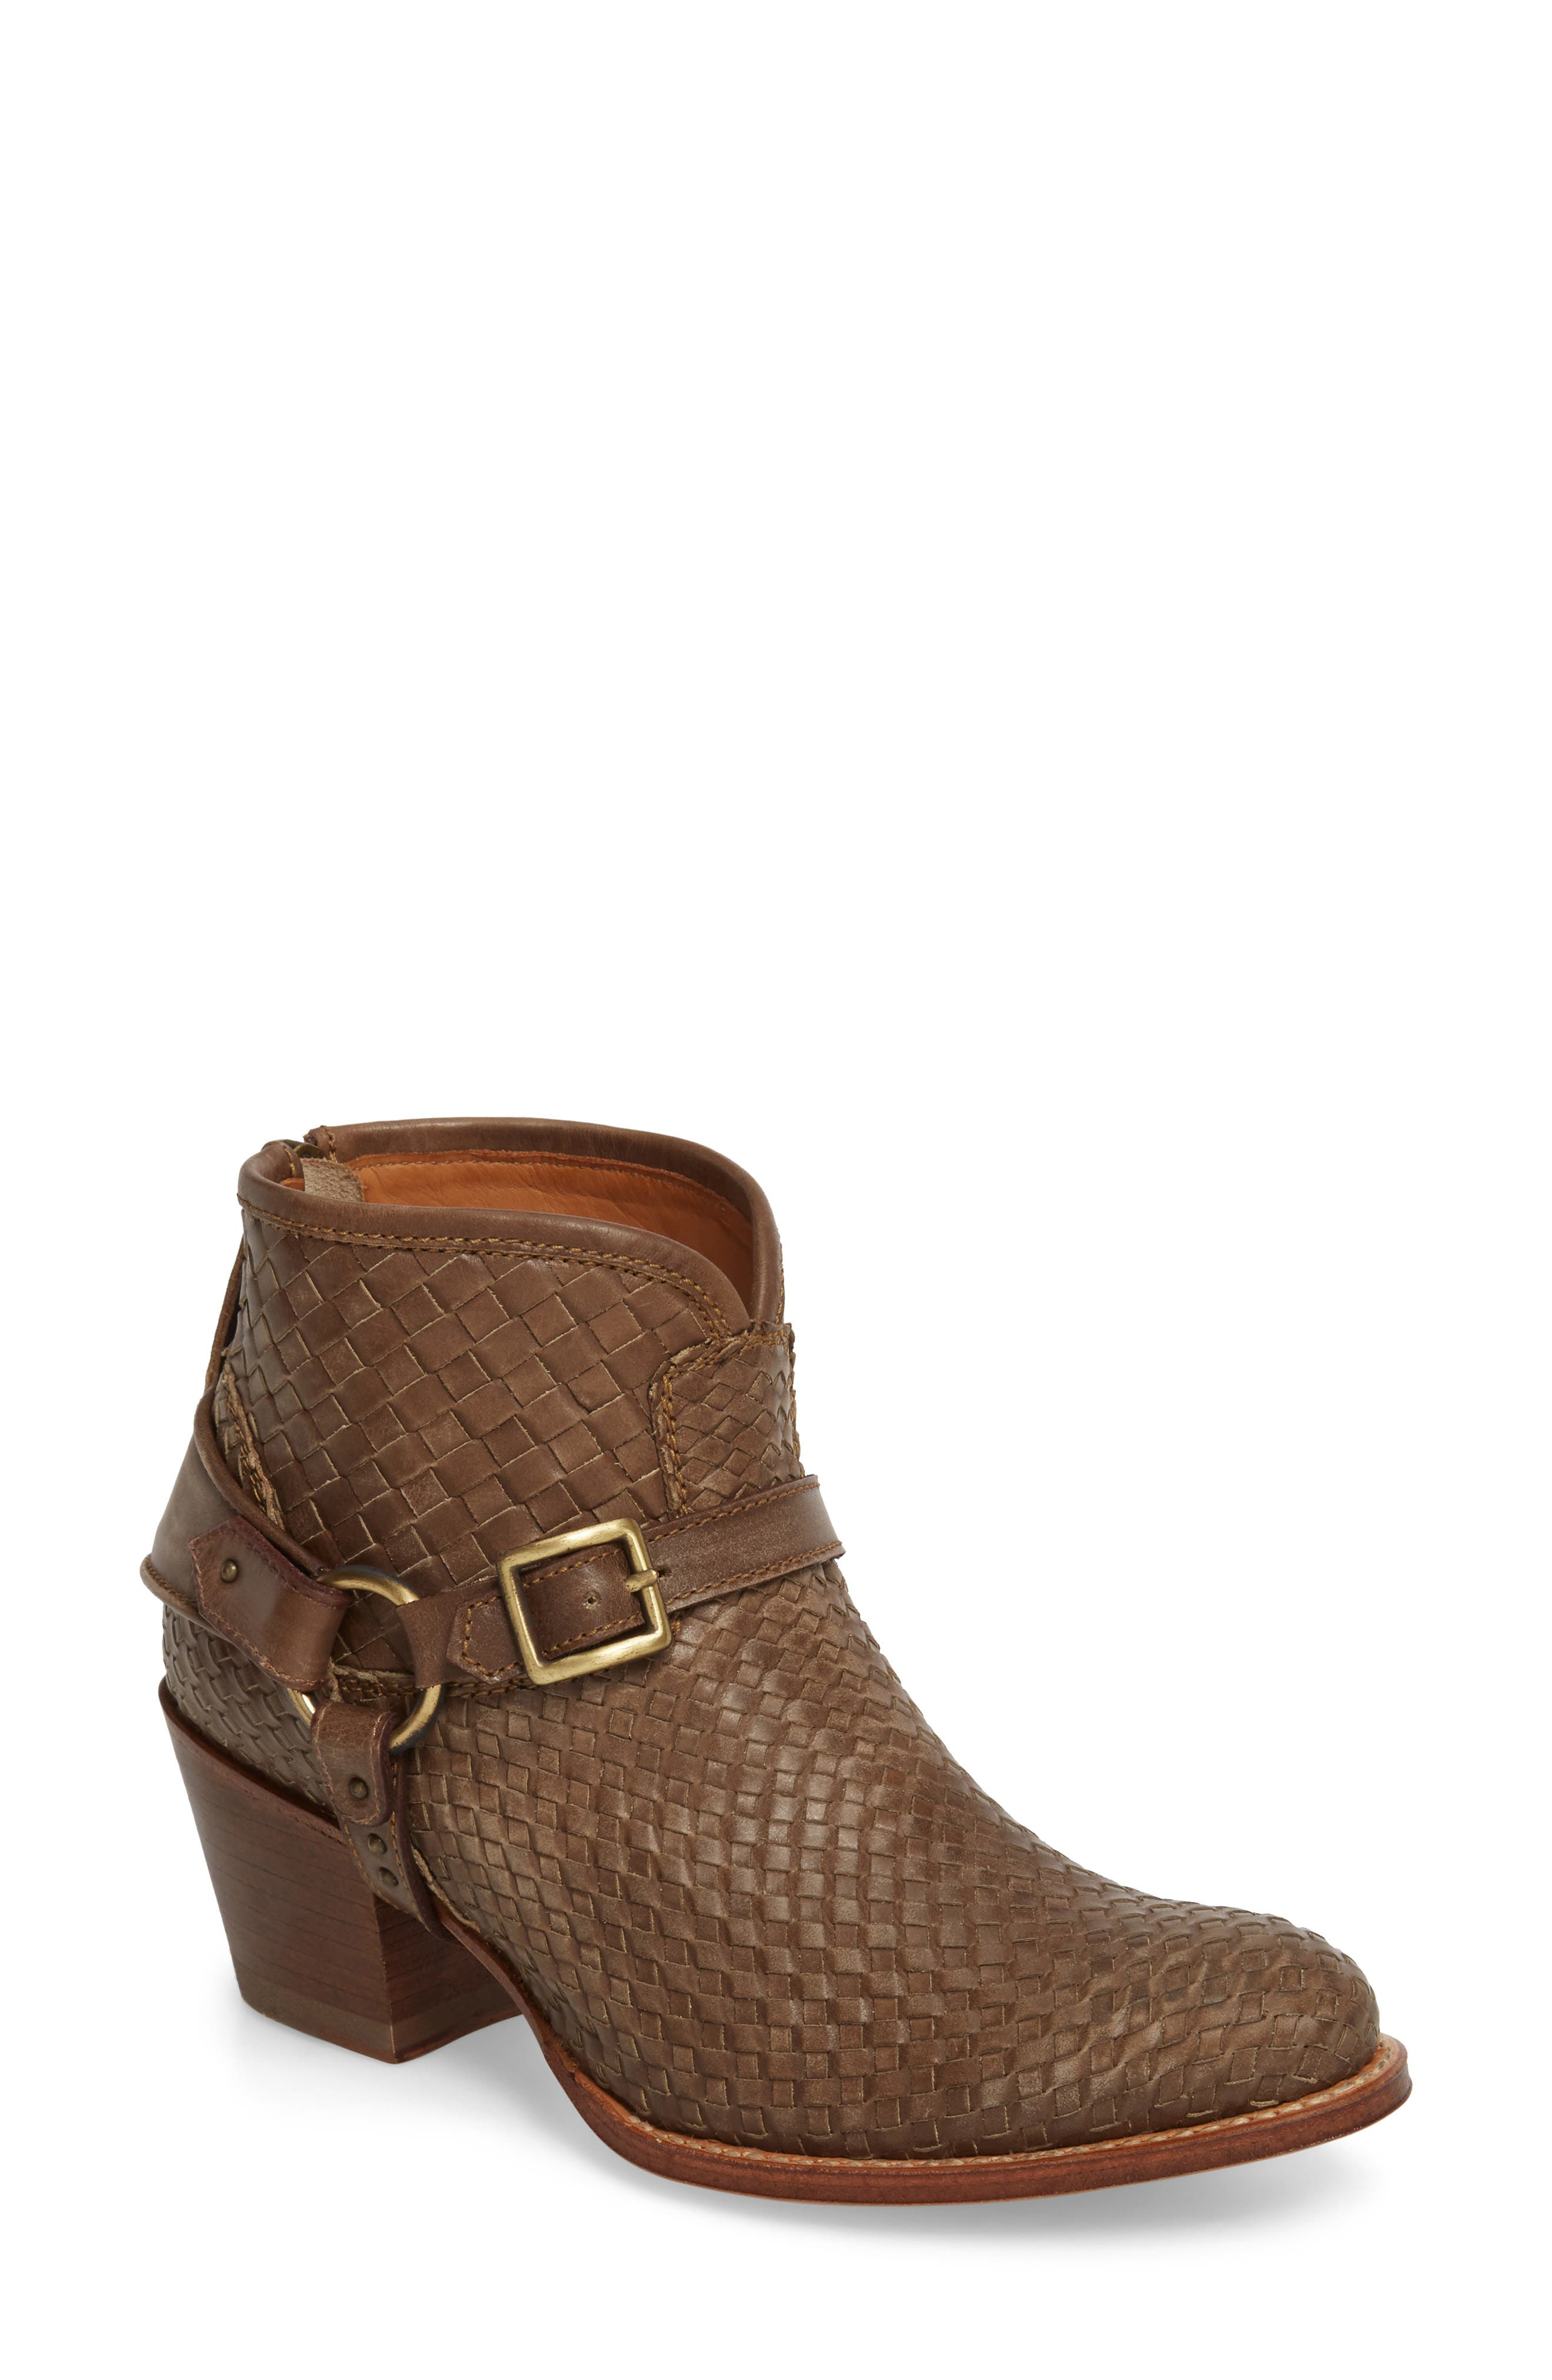 Two24 by Ariat Sollana Bootie,                         Main,                         color, Brown Leather